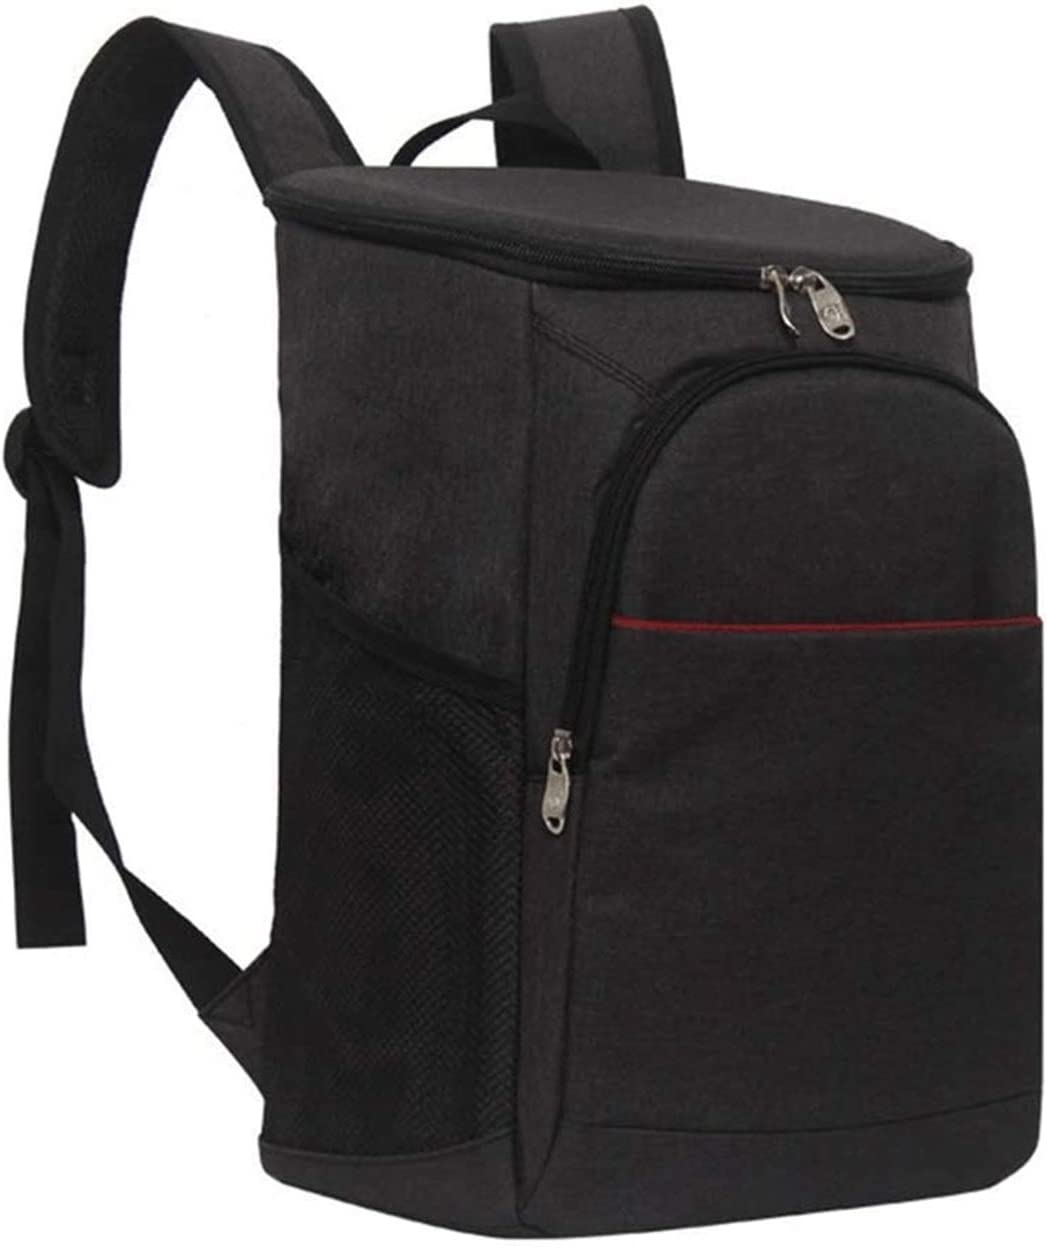 Sdesign Insulated Daily bargain sale Seattle Mall Lunch Bag Tote Cooler Box